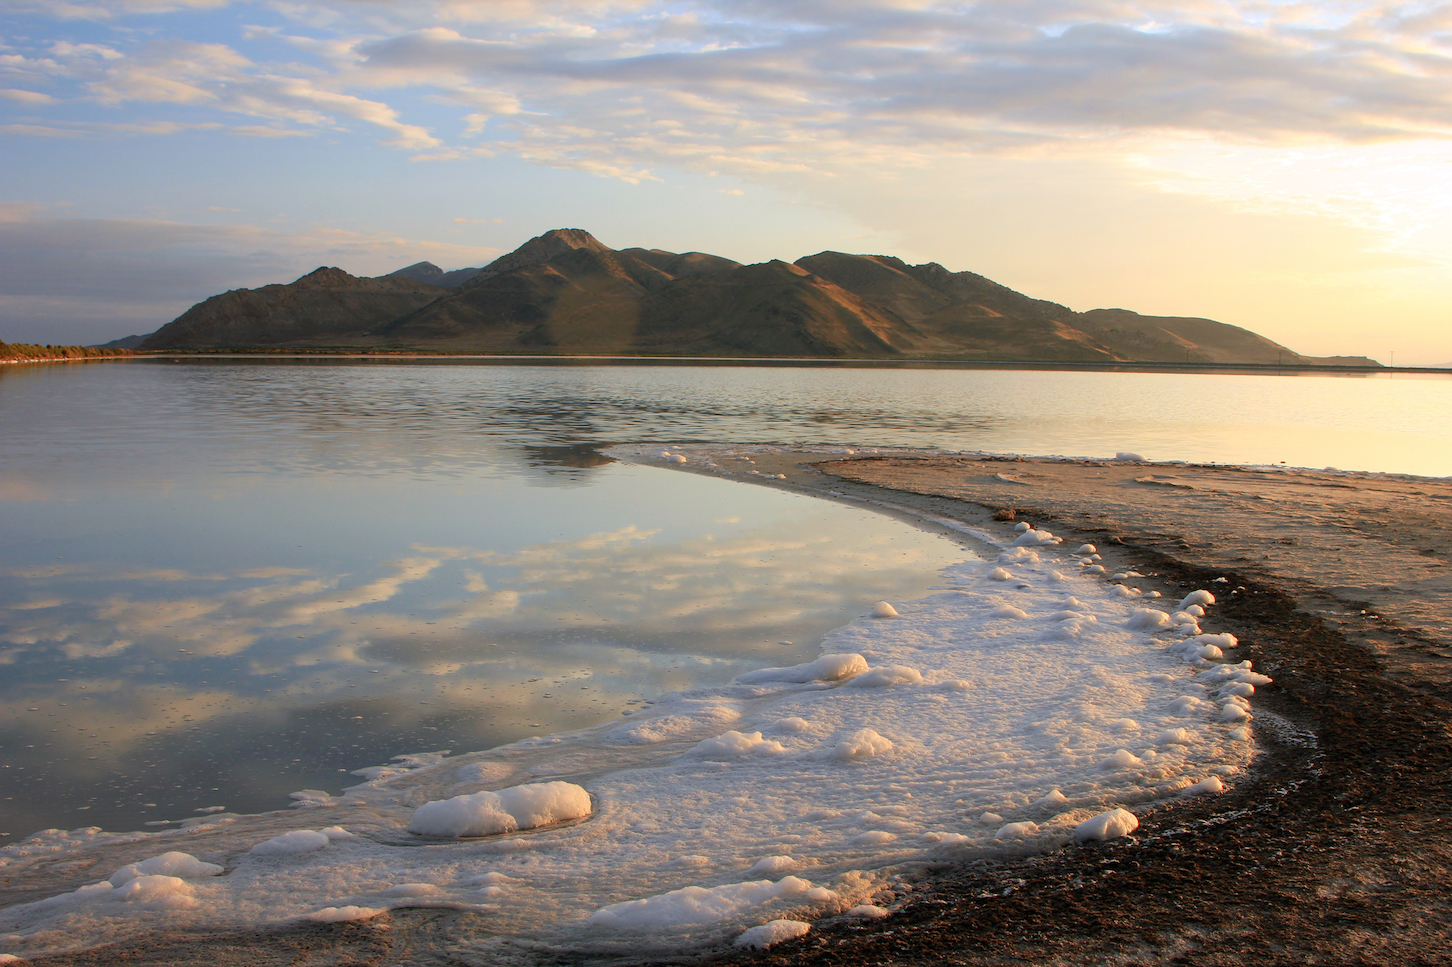 Salt lakes can be found all over the world and are important to their local communities for both environmental and economic reasons.